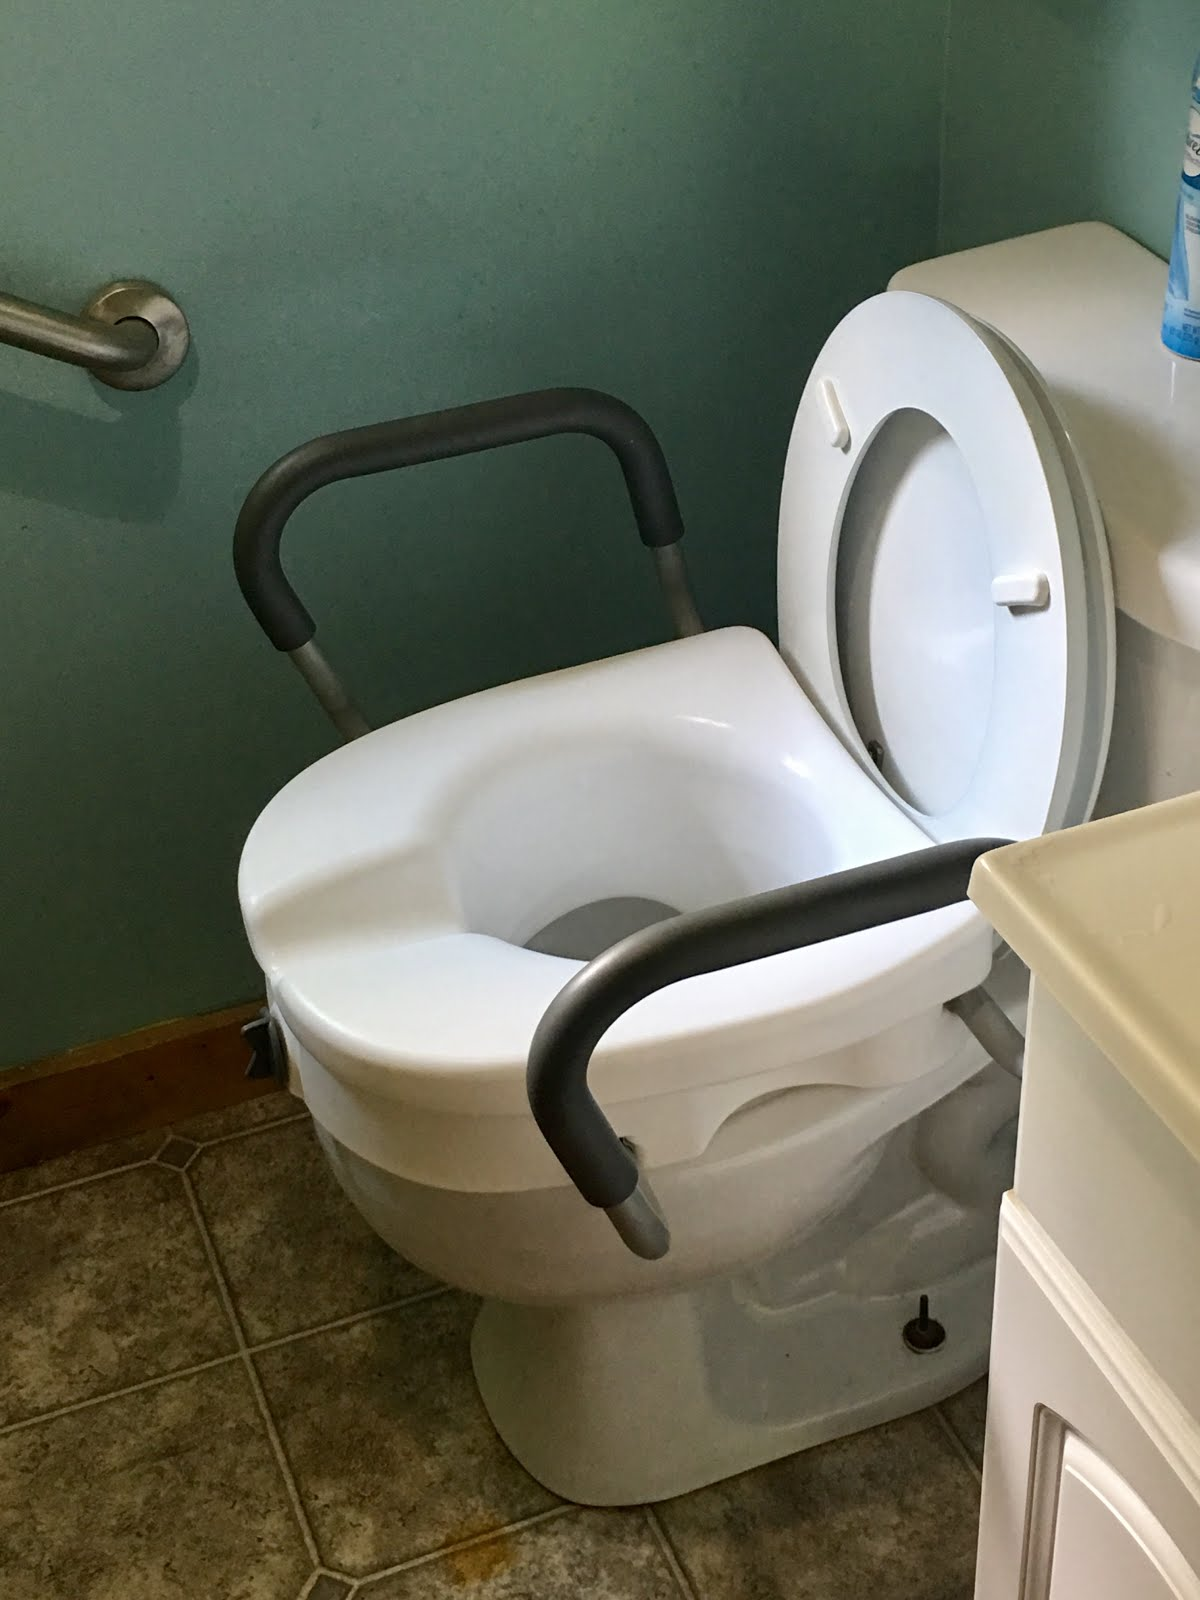 difference between shower chair and tub transfer bench wedding covers or not 5 tips for making a small home wheelchair accessible on